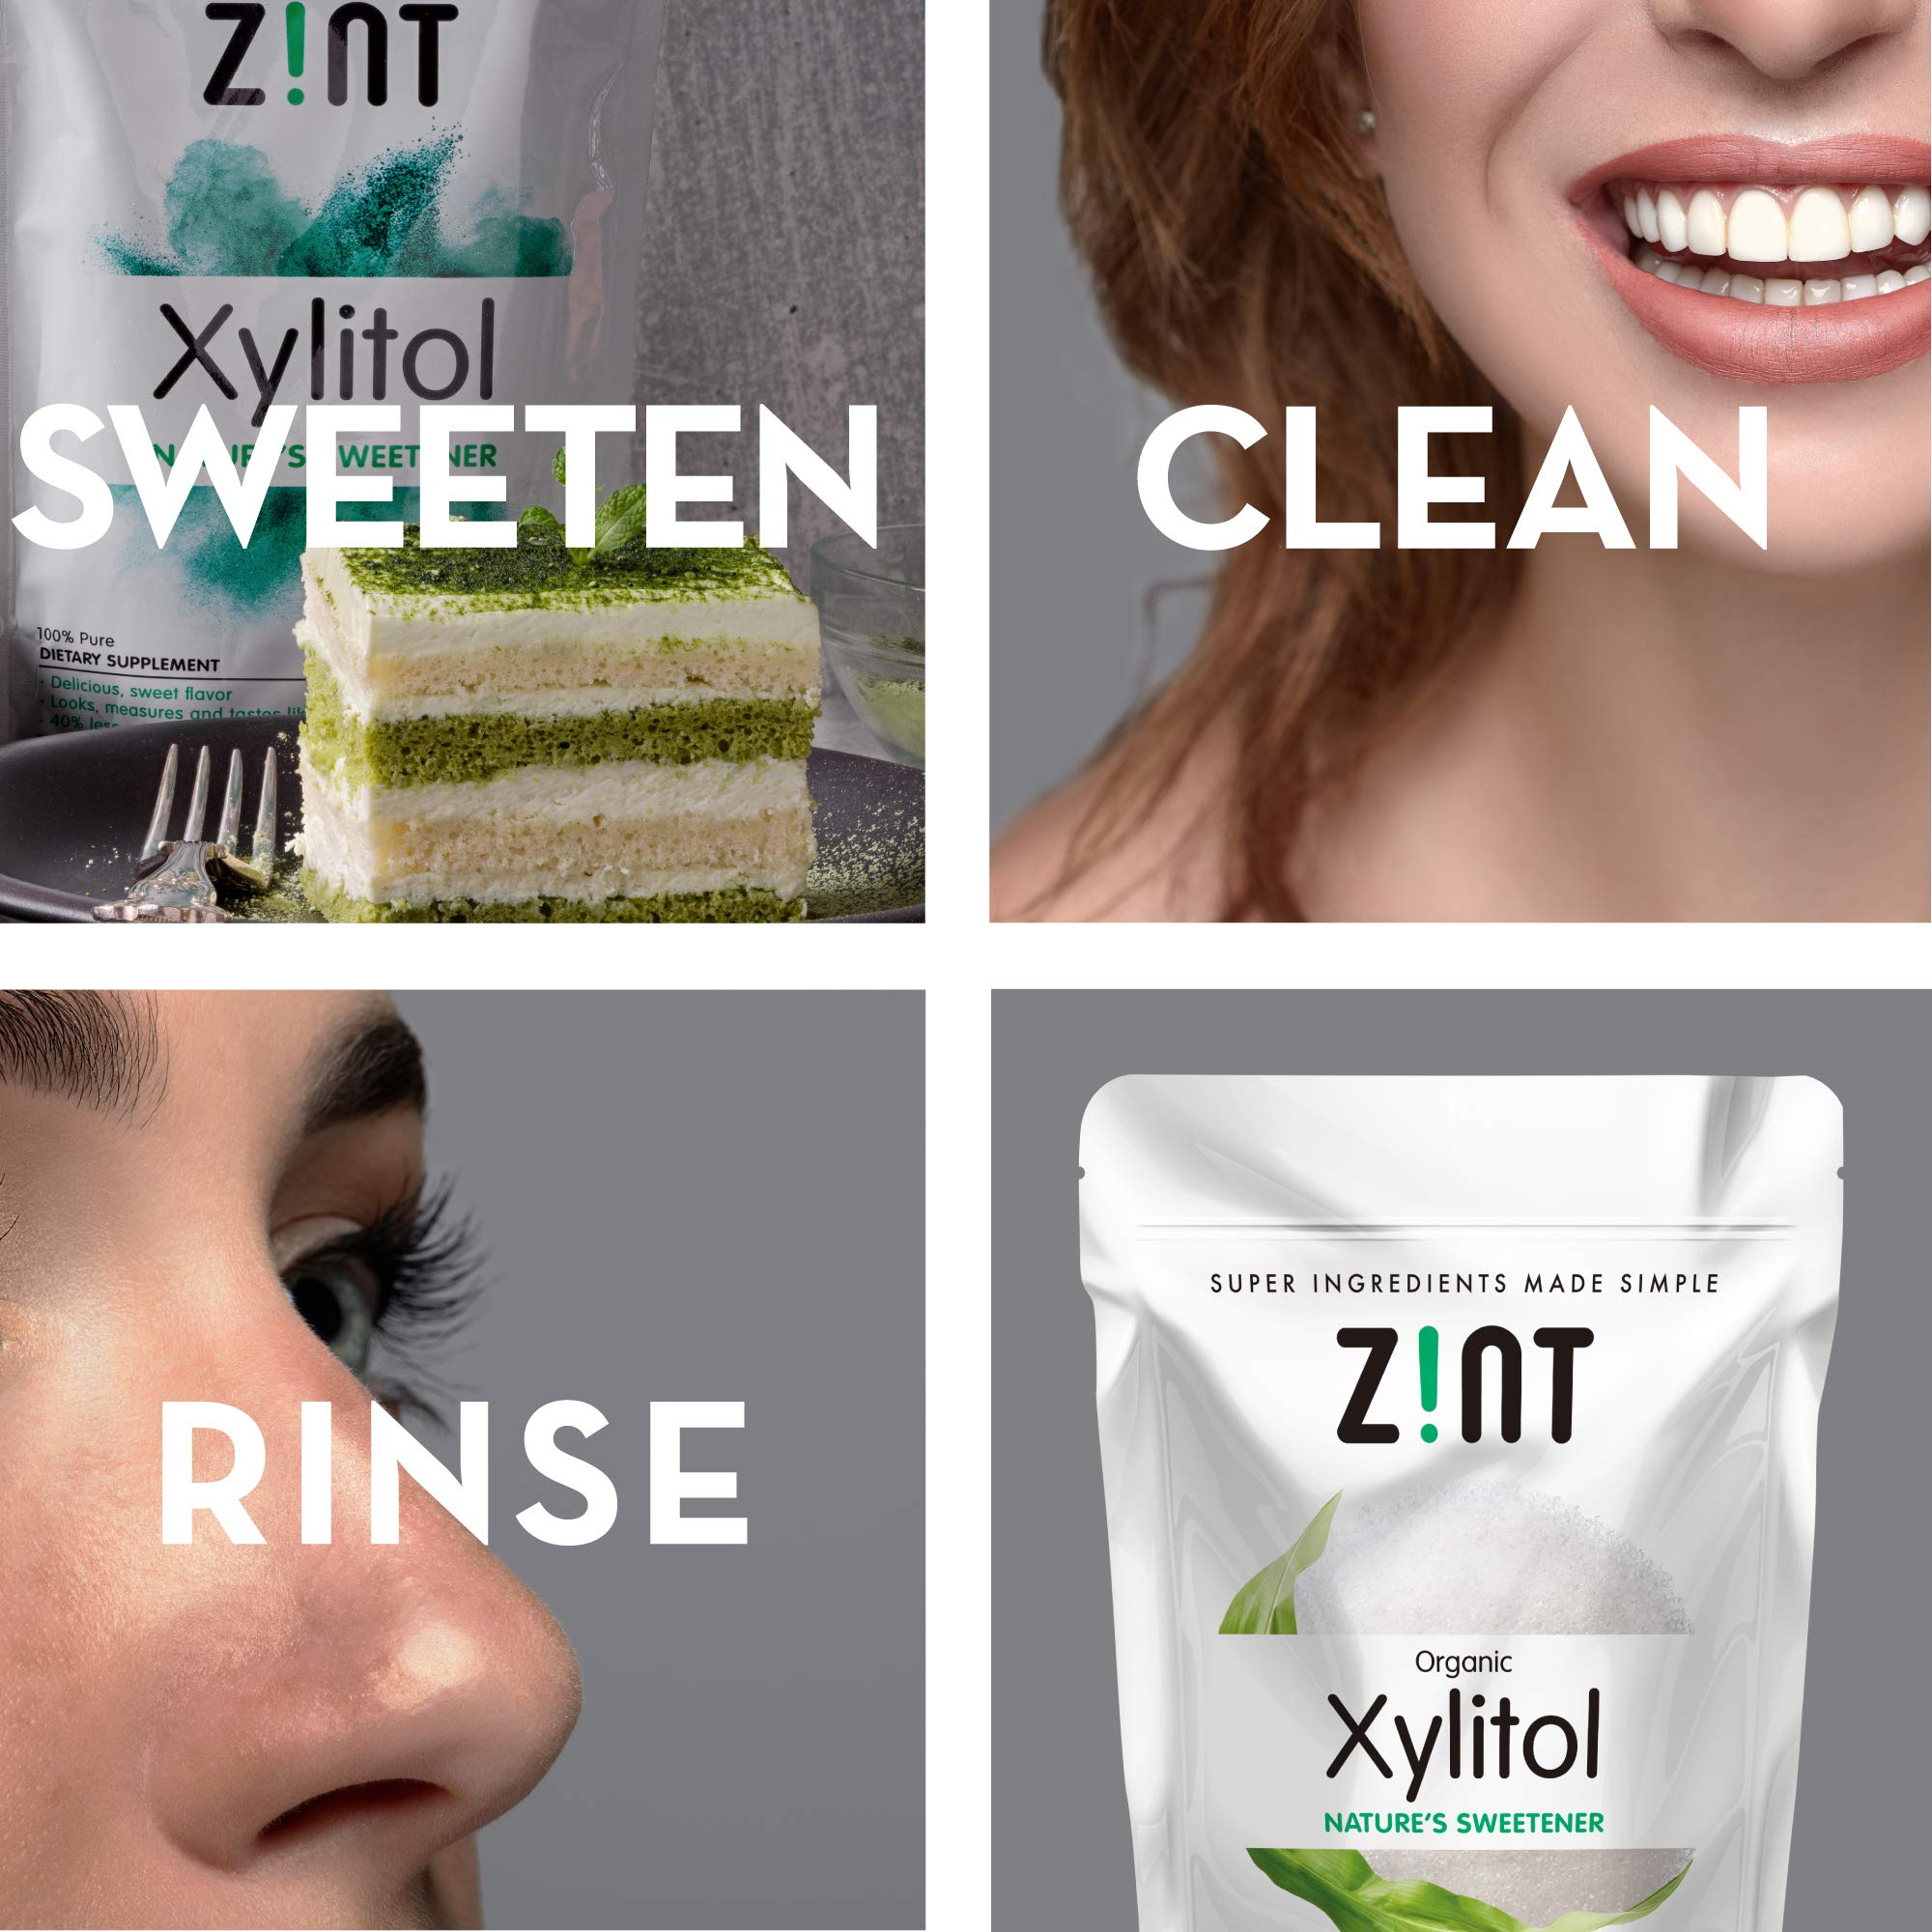 Organic Xylitol Sweetener XL (5 lbs): Keto Friendly, Low-Carb, Low-Calorie, USDA Organic Natural Sugar Substitute, Non GMO, Low Glycemic Index, Measures & Tastes Like Sugar by Zint (Image #6)